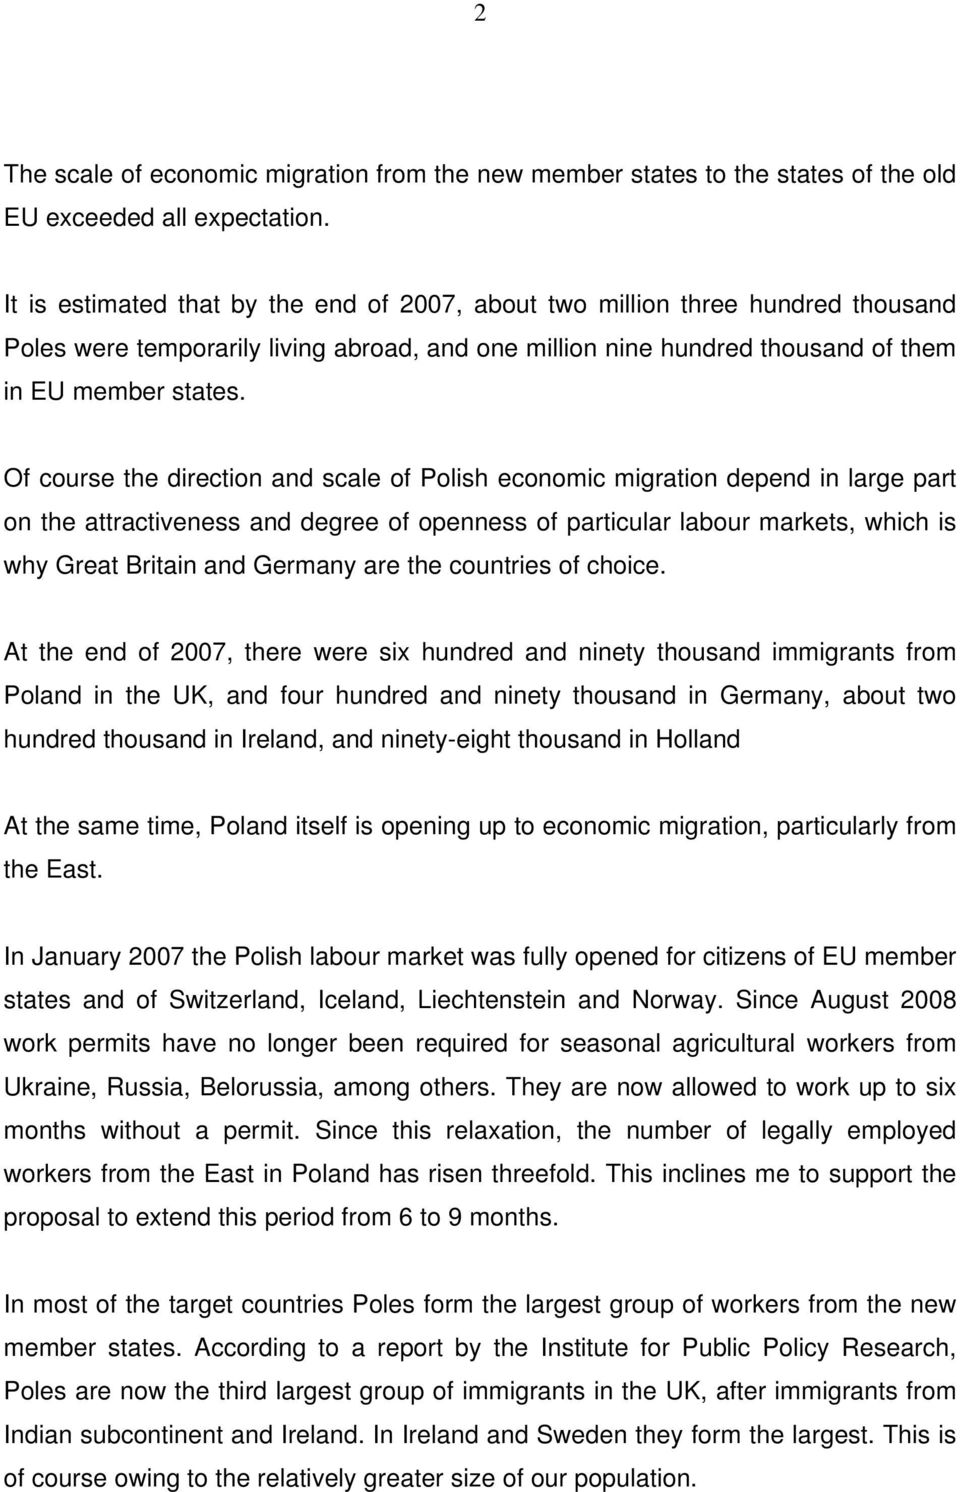 Of course the direction and scale of Polish economic migration depend in large part on the attractiveness and degree of openness of particular labour markets, which is why Great Britain and Germany